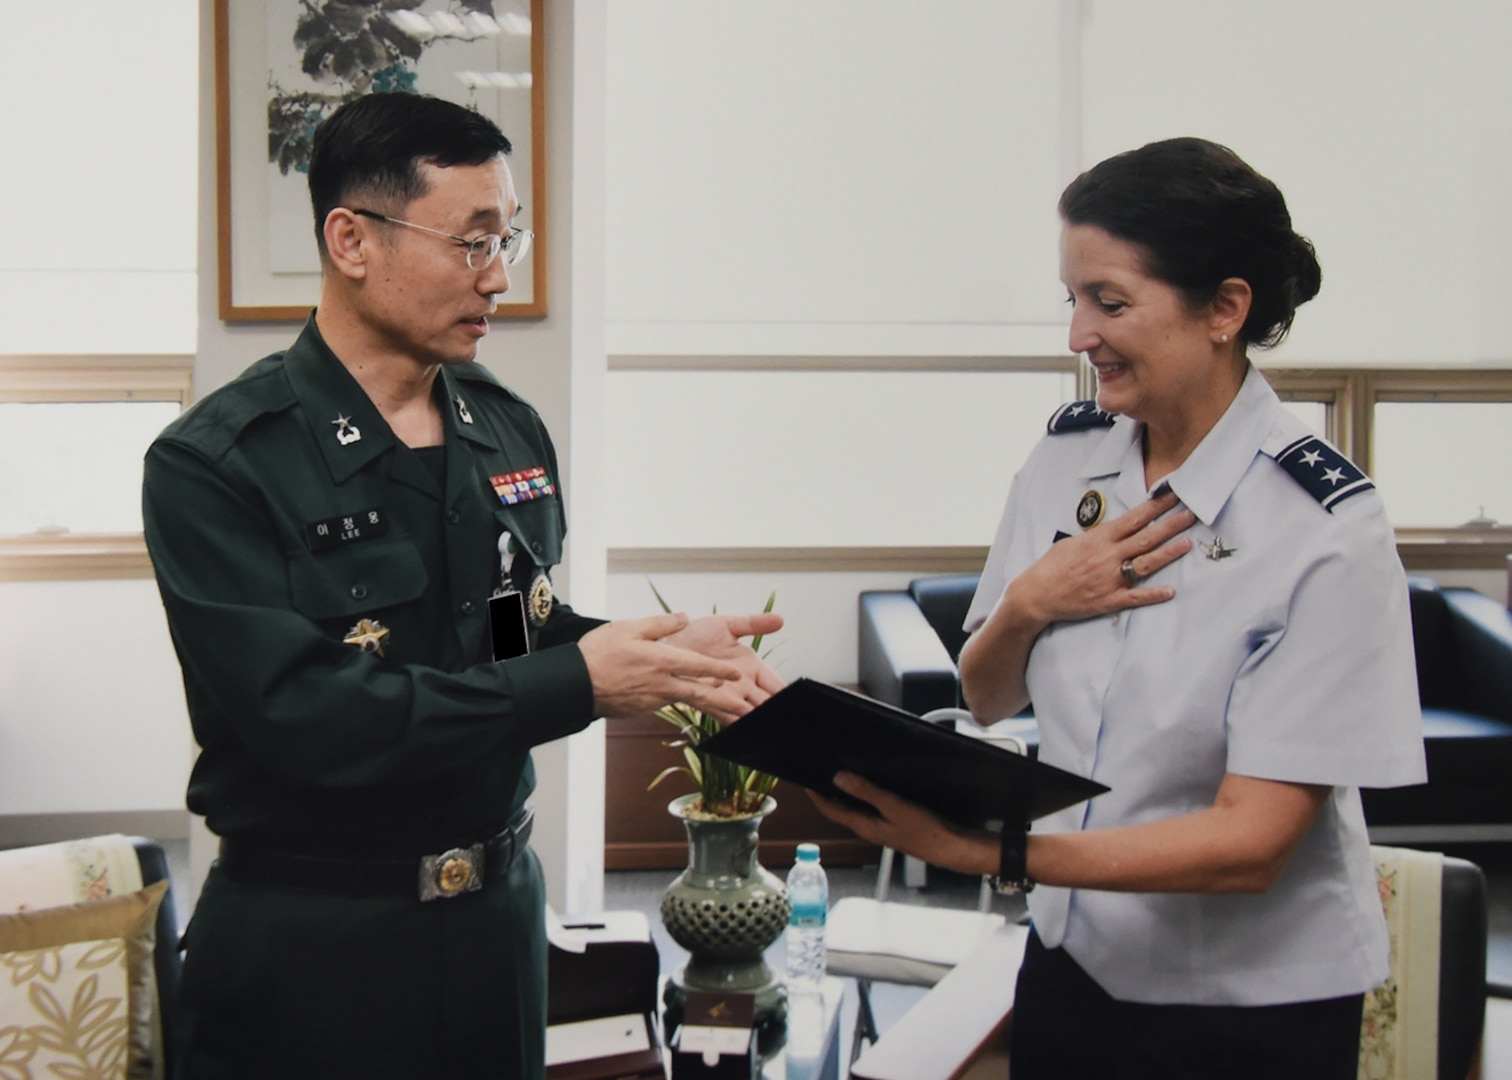 U.S. Air Force Maj. Gen. Nina Armagno, director of plans and policy (J5) for U.S. Strategic Command (USSTRATCOM), meets with Republic of Korea (ROK) Army Brig. Gen. Lee Jung-woong, acting J5 for the ROK Joint Chiefs of Staff (JCS), during her visit to the ROK JCS headquarters in Seoul, Oct. 17, 2017. Armagno and members of her staff visited Seoul for senior leader discussions on USSTRATCOM's continuing partnership with the Republic of Korea. One of nine Department of Defense unified combatant commands, USSTRATCOM has global responsibilities assigned through the Unified Command Plan that include strategic deterrence, space operations, cyberspace operations, joint electronic warfare, global strike, missile defense and intelligence.